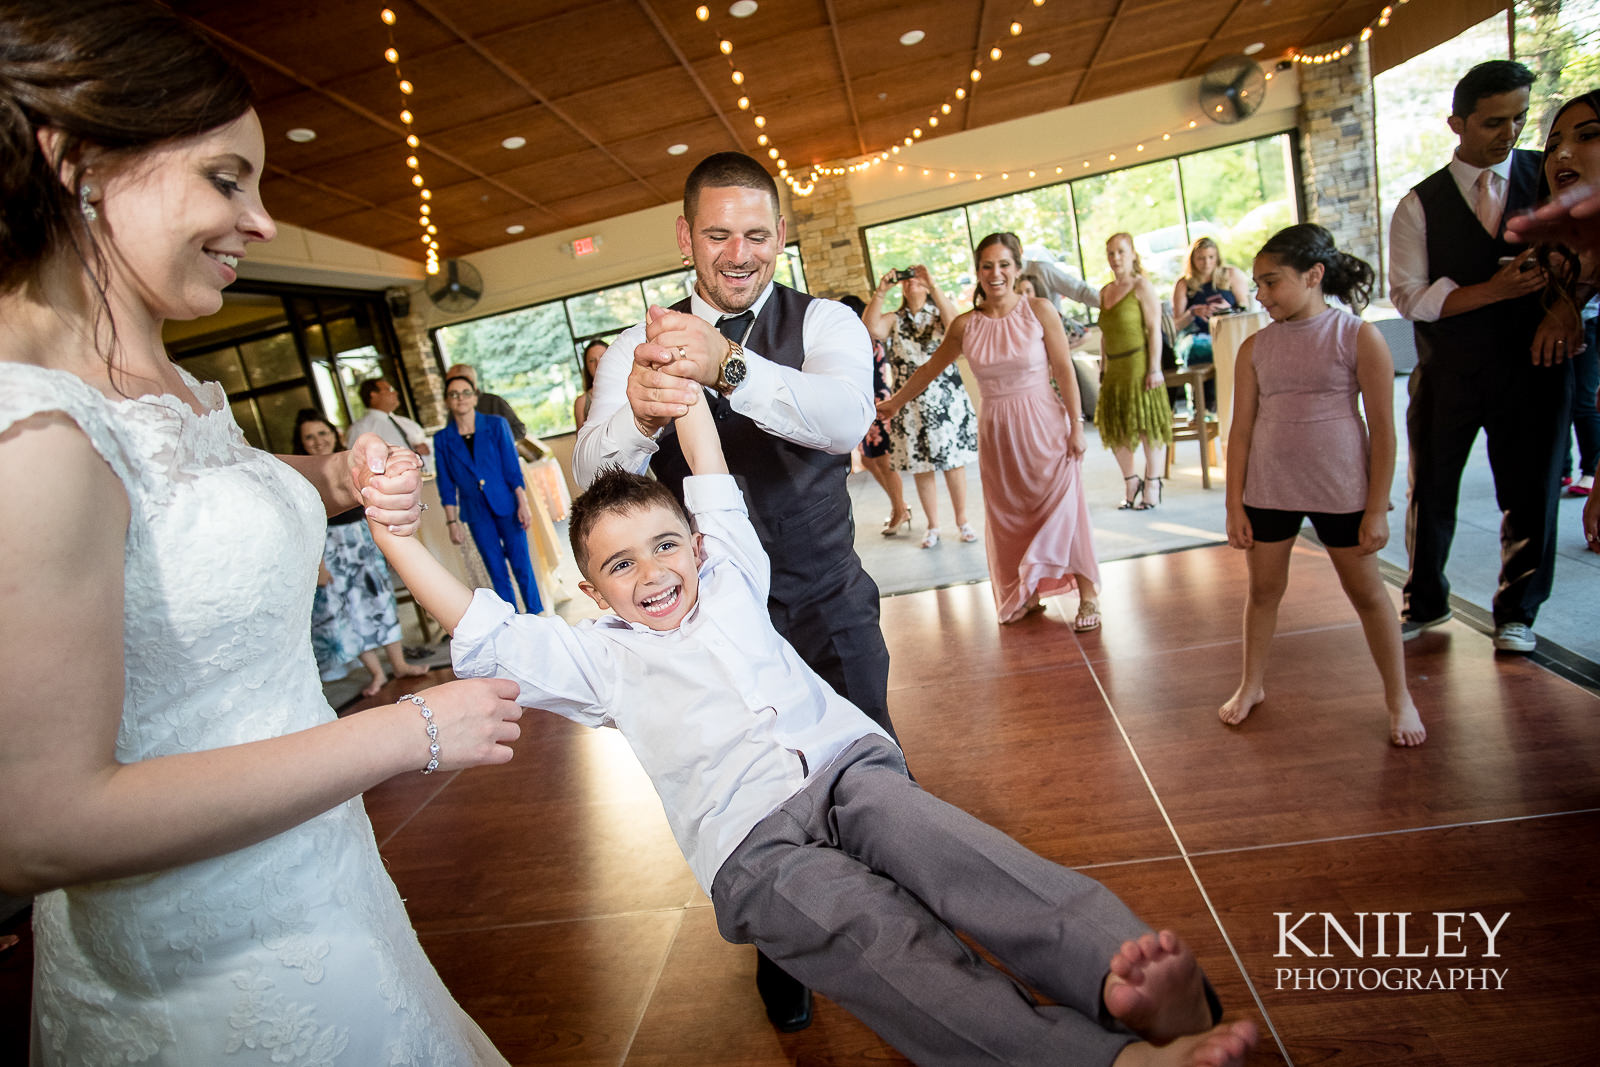 123 - Ravenwood Golf Club wedding pictures - Rochester NY - Kniley Photography - XT2B1957.jpg